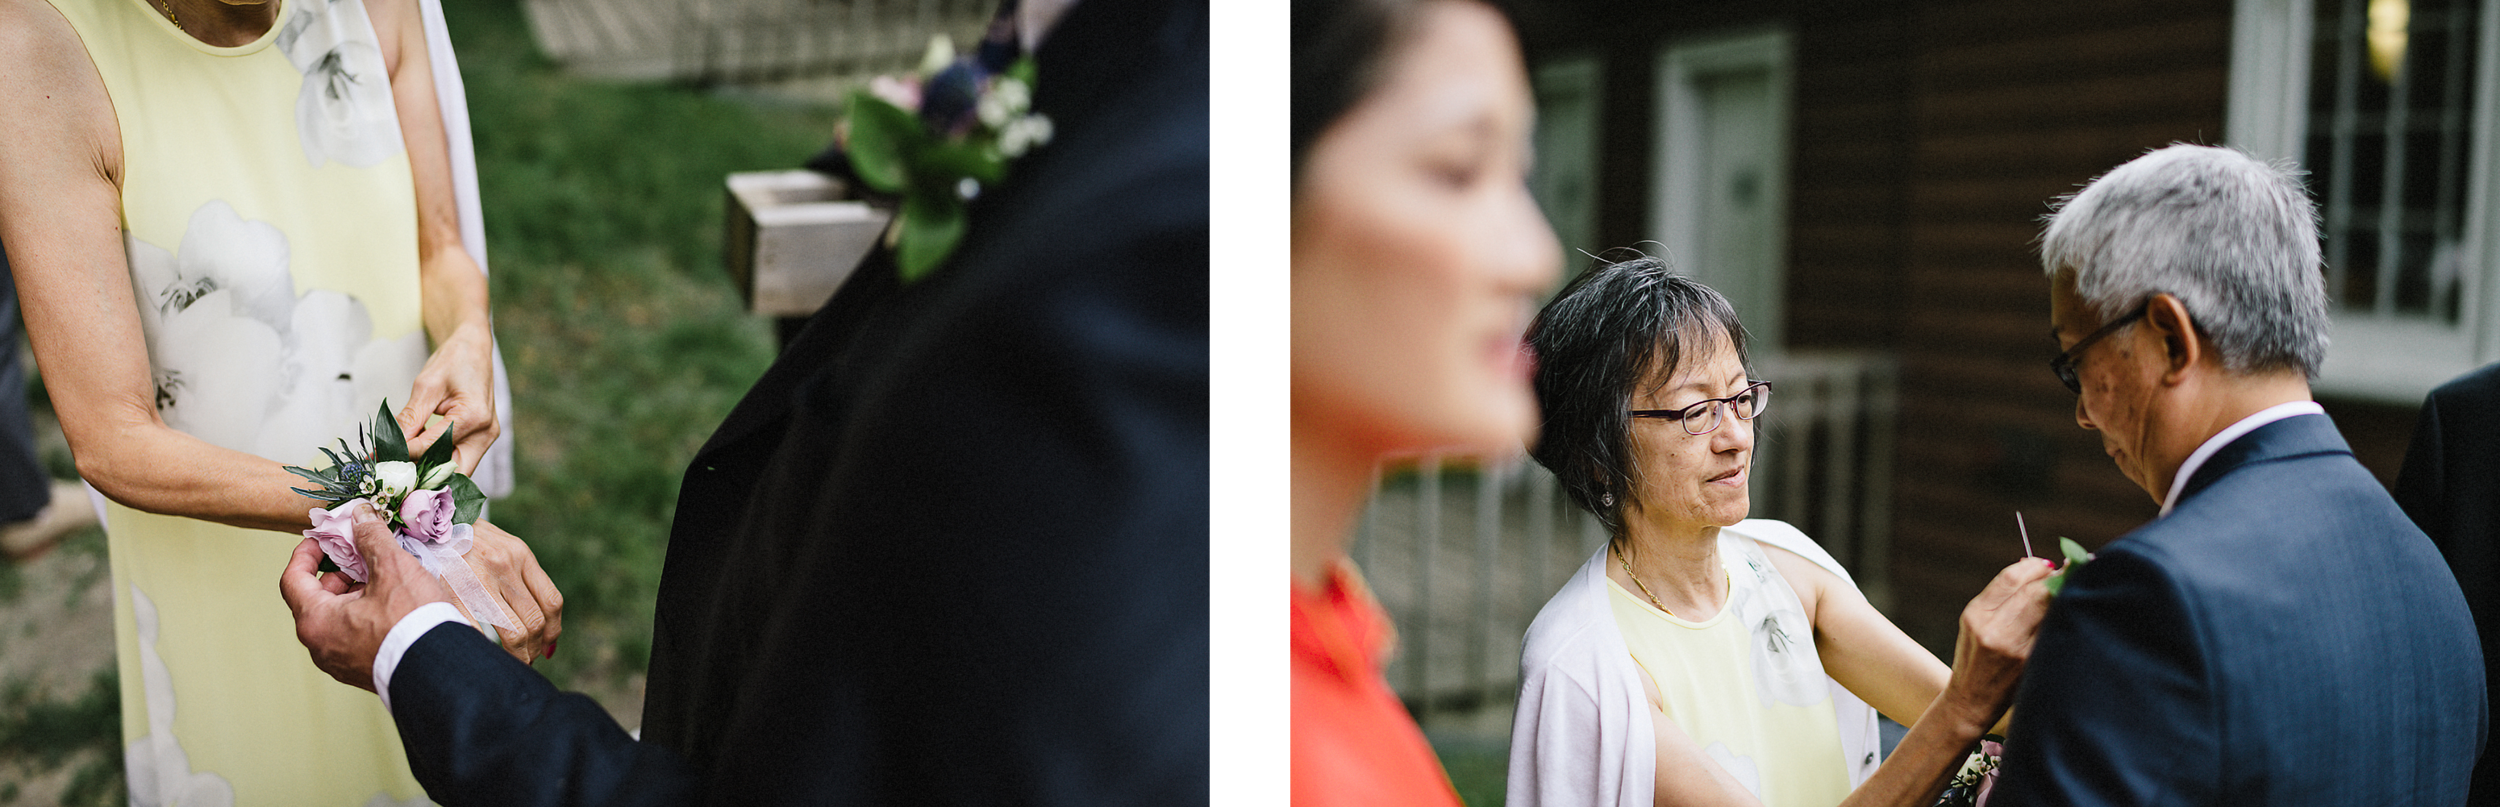 spread-2-Chinese-Tea-Ceremony-in-outdoor-forest-venue-toronto-high-park-colbourn-lodge-dog-friendly-venue-bride-and-groom-candid-moment-best-documentary-wedding-photographers--Candid-Getting-Ready-Moments.jpg